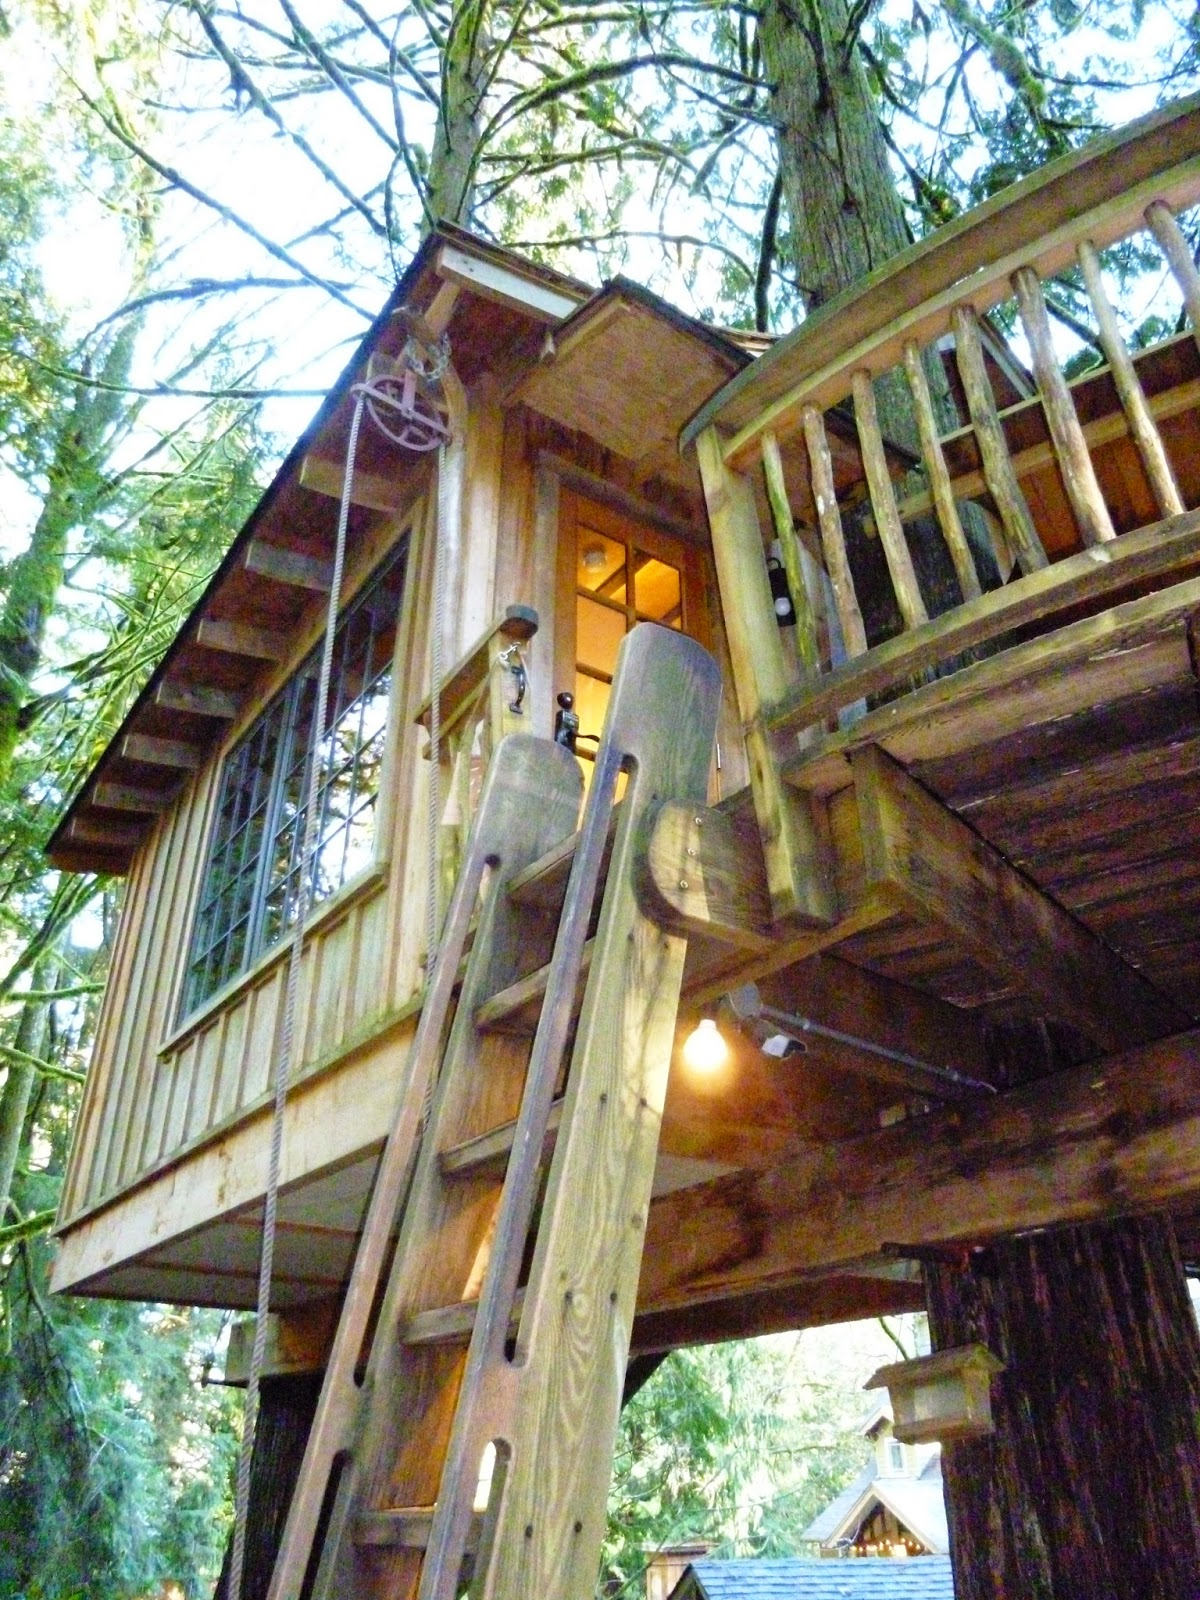 Treehouse masters treehouse point Fall City Upper Pond Tree House At Treehouse Point Married To Adventure Pacific Nw Travels And Tails Up In Tree House At Treehouse Point